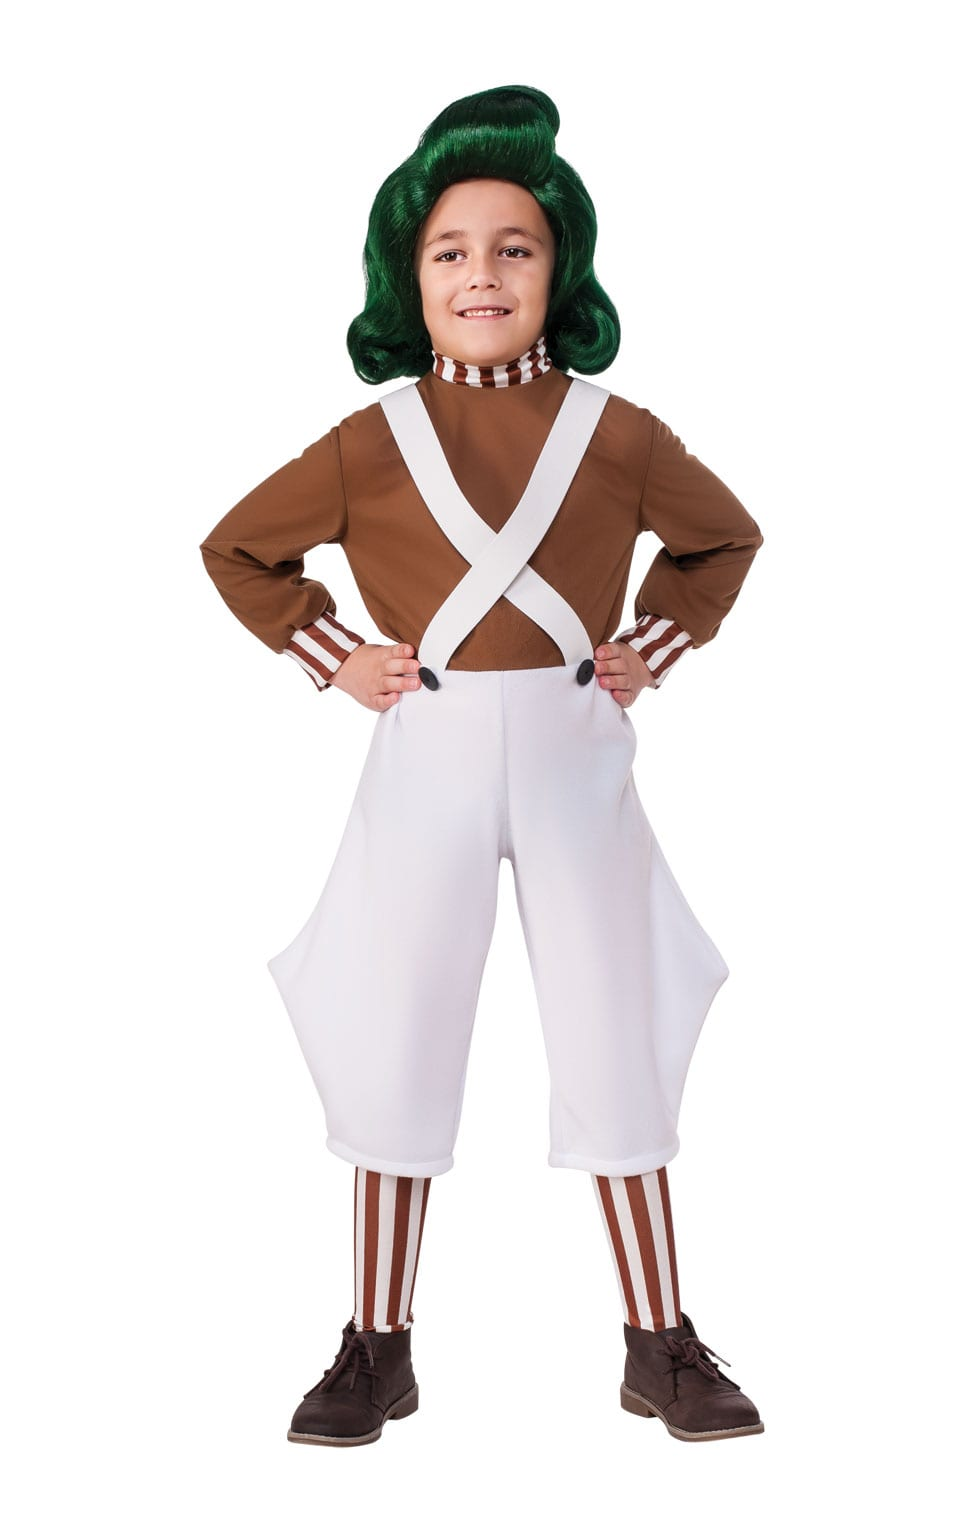 Oompa Loompa Children's Fancy Dress Costume